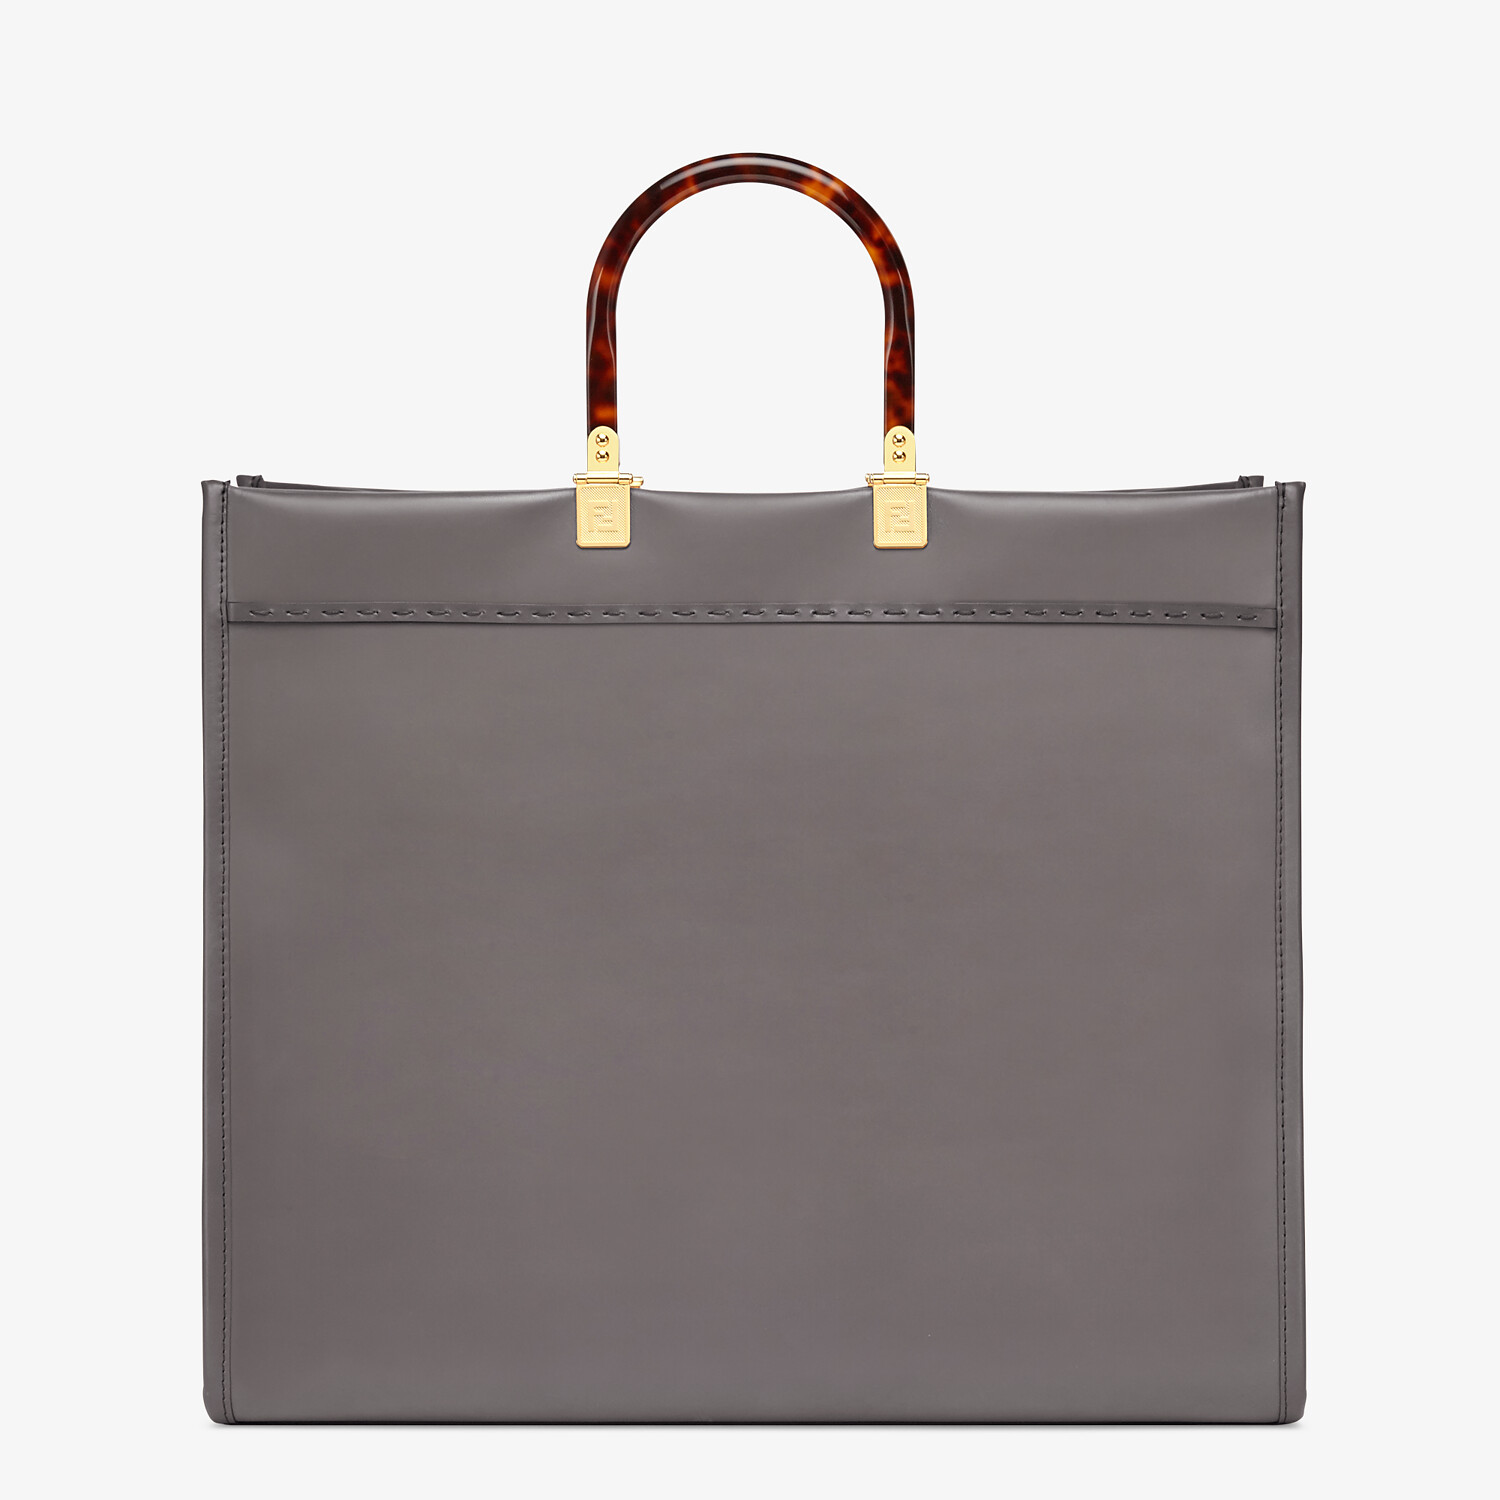 FENDI SUNSHINE SHOPPER - Gray leather shopper - view 3 detail